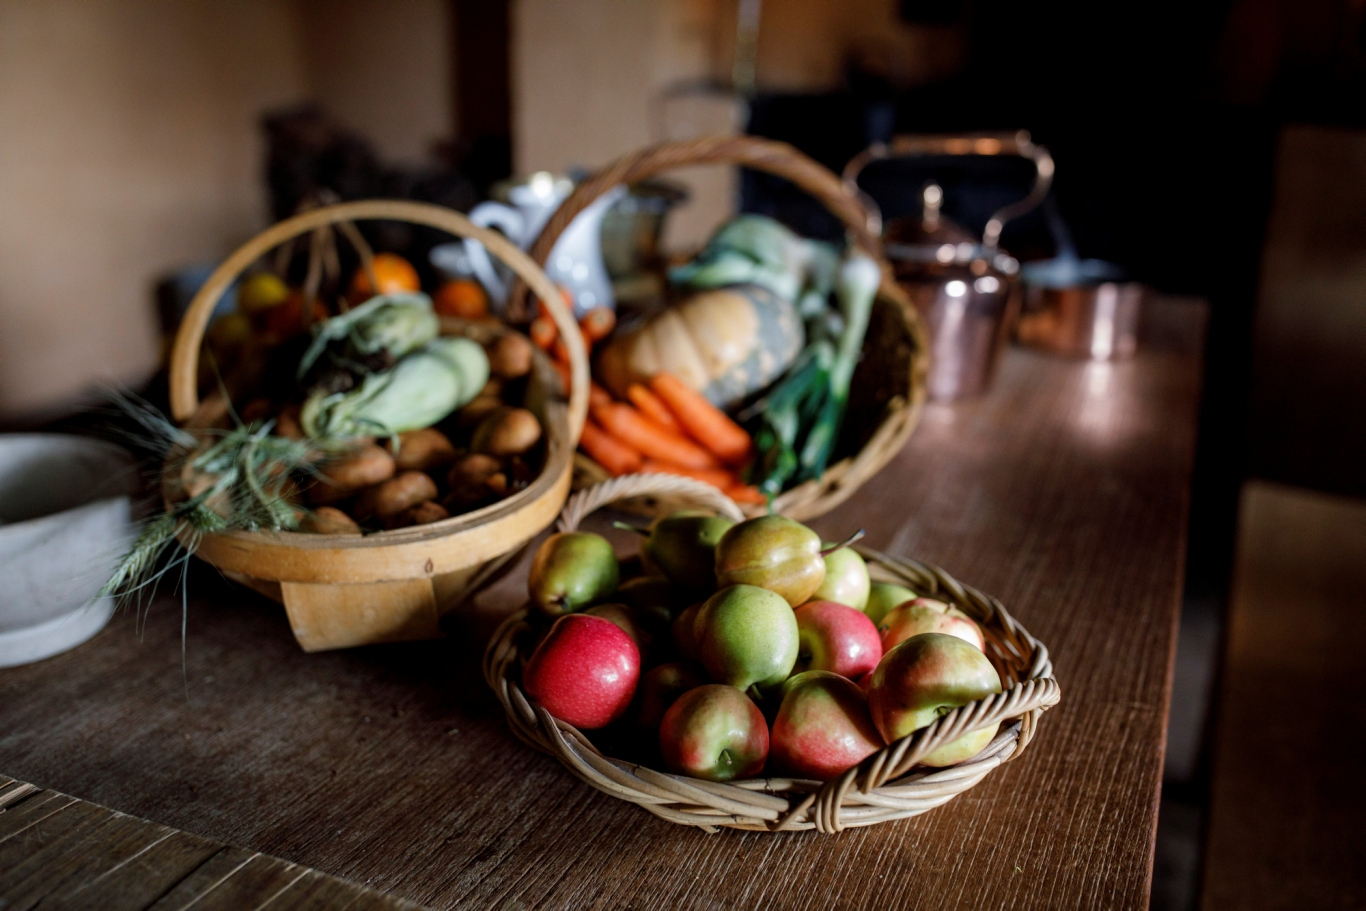 Vegetables and fruit on kitchen table.